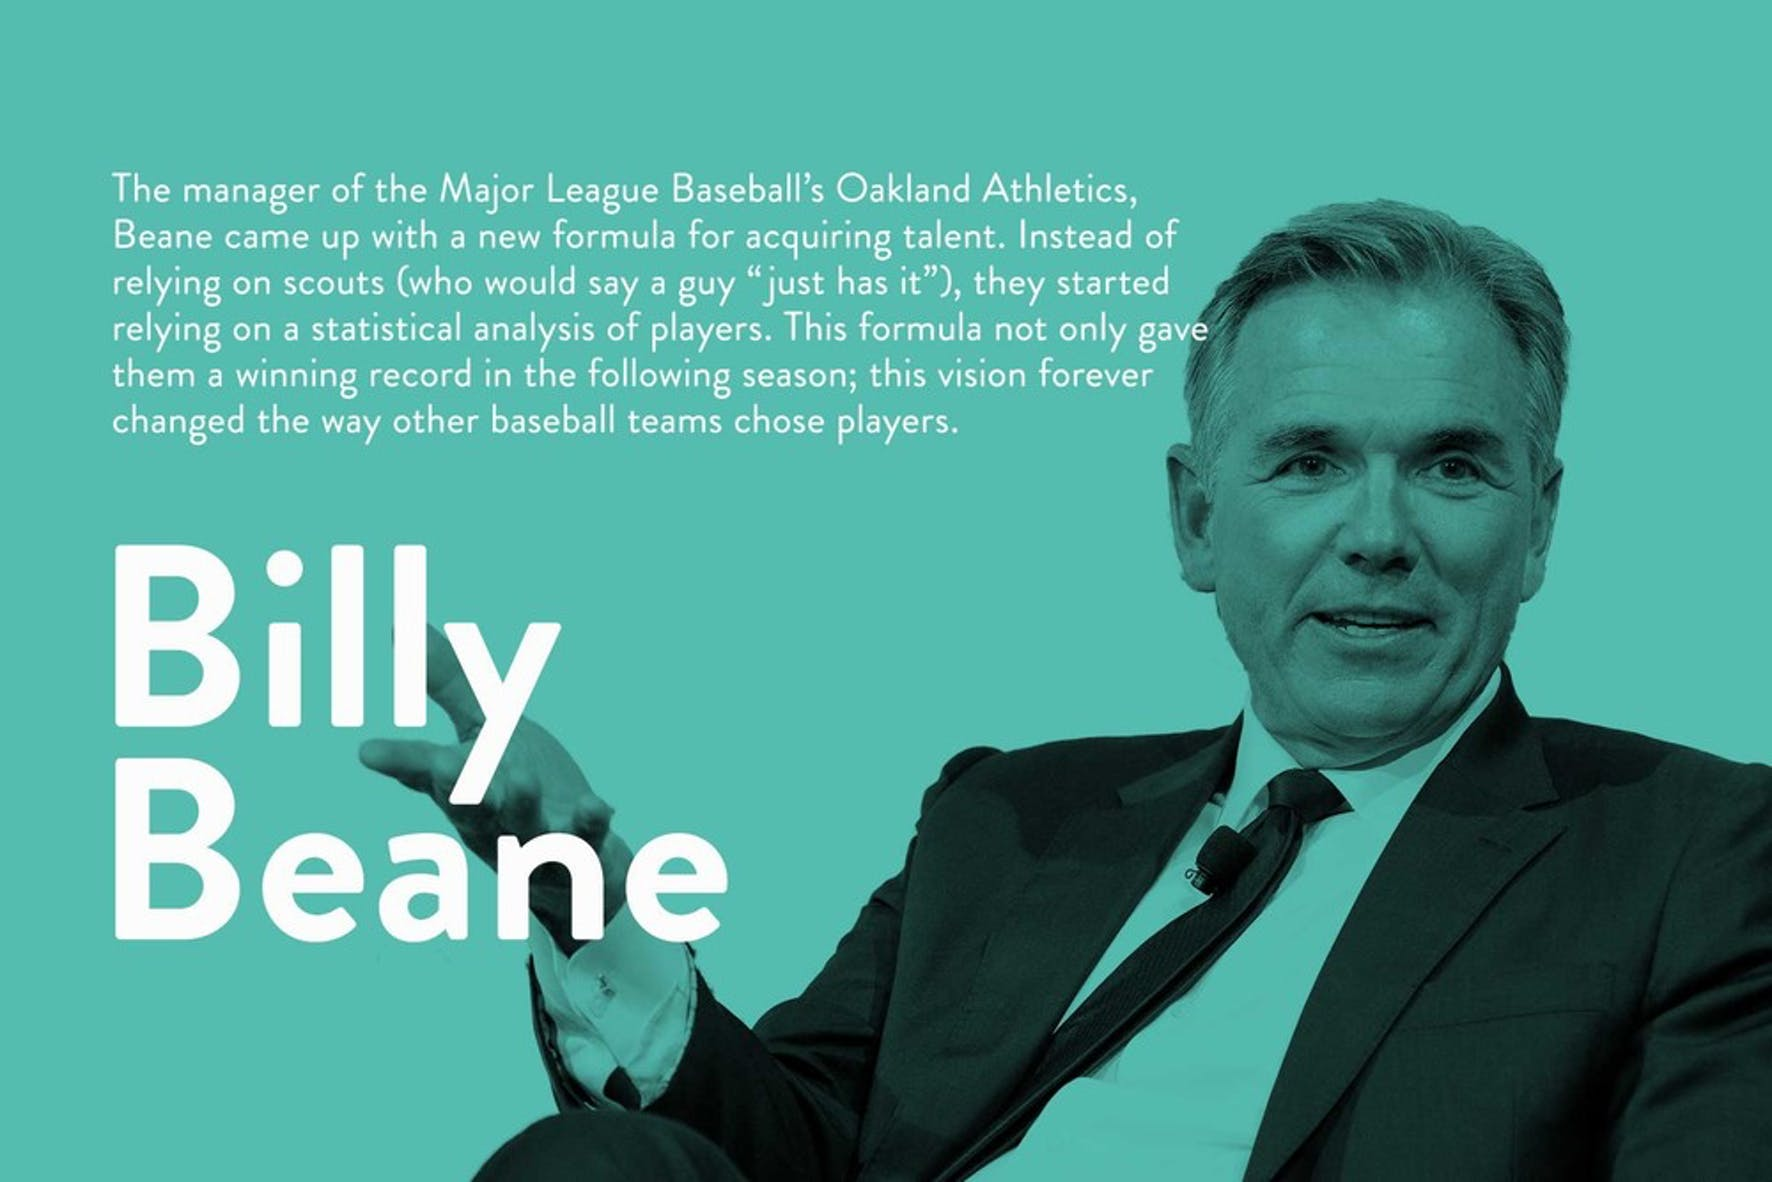 What is a visionary leader? Manager of the Oakland Athletics Billy Beane on being a visionary leder